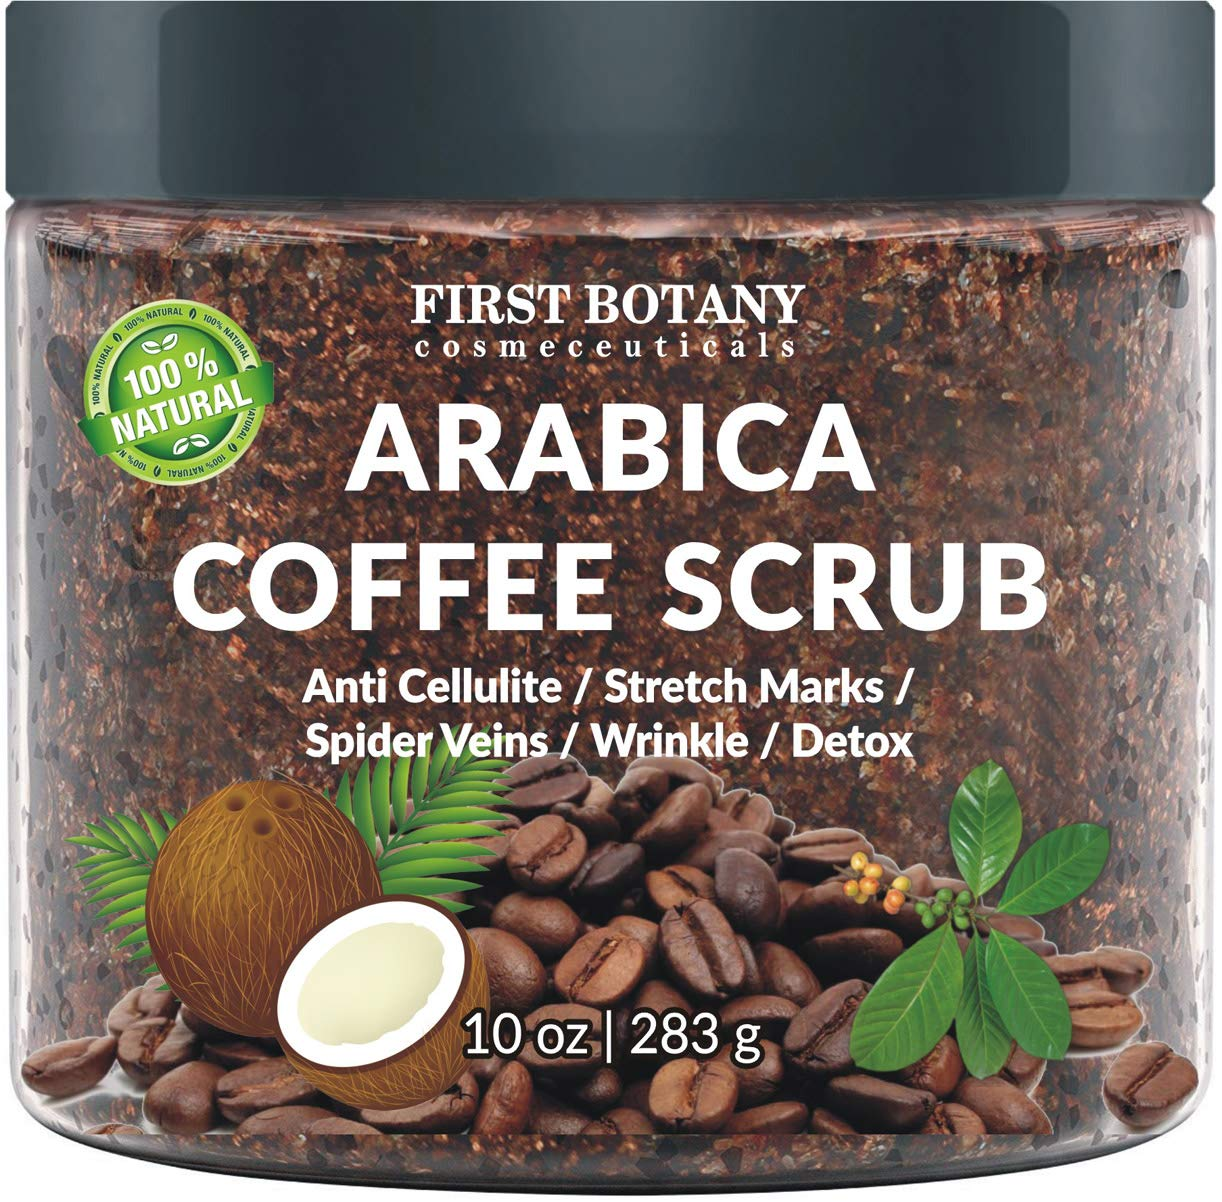 100% Natural Arabica Coffee Scrub with Organic Coffee, Coconut and Shea Butter - Best Acne, Anti Cellulite and Stretch Mark treatment, Spider Vein Therapy for Varicose Veins & Eczema 10 oz by First Botany Cosmeceuticals